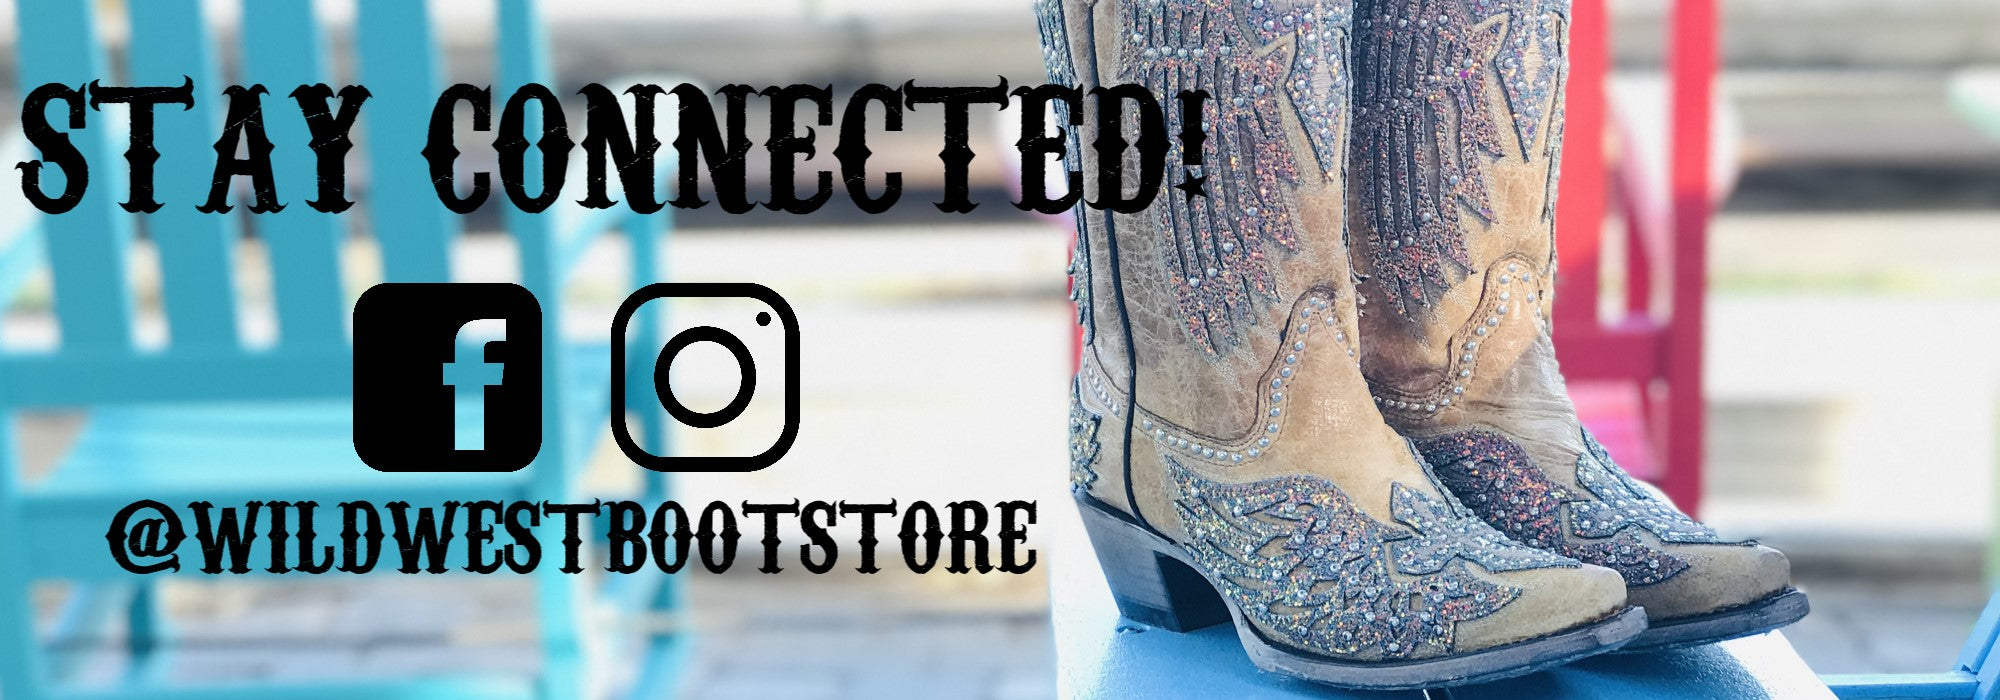 4f442fd05af Wild West Boot Store - Famous Brand Men's and Women's Cowboy Boots